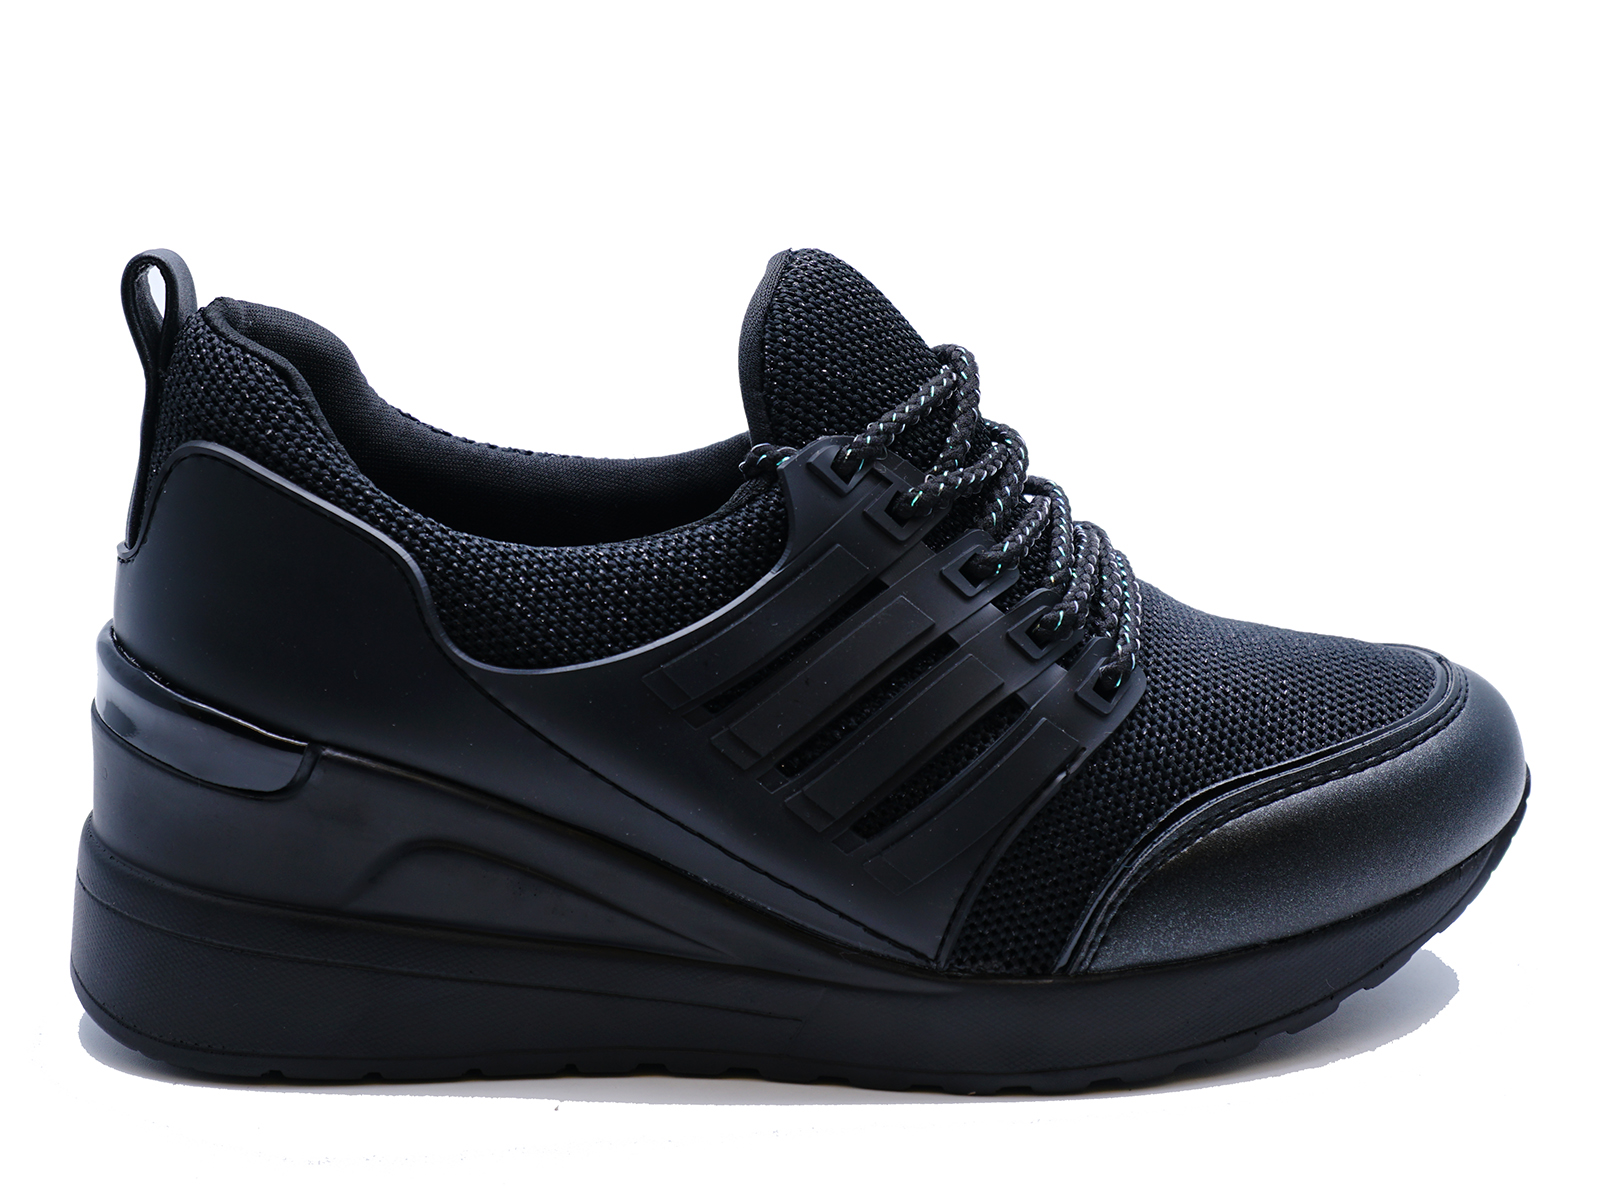 505a6e4d2d873 Sentinel LADIES BLACK SLIP-ON RUNNING WEDGE TRAINERS GYM PUMPS PLIMSOLLS  SHOES SIZES 3-8